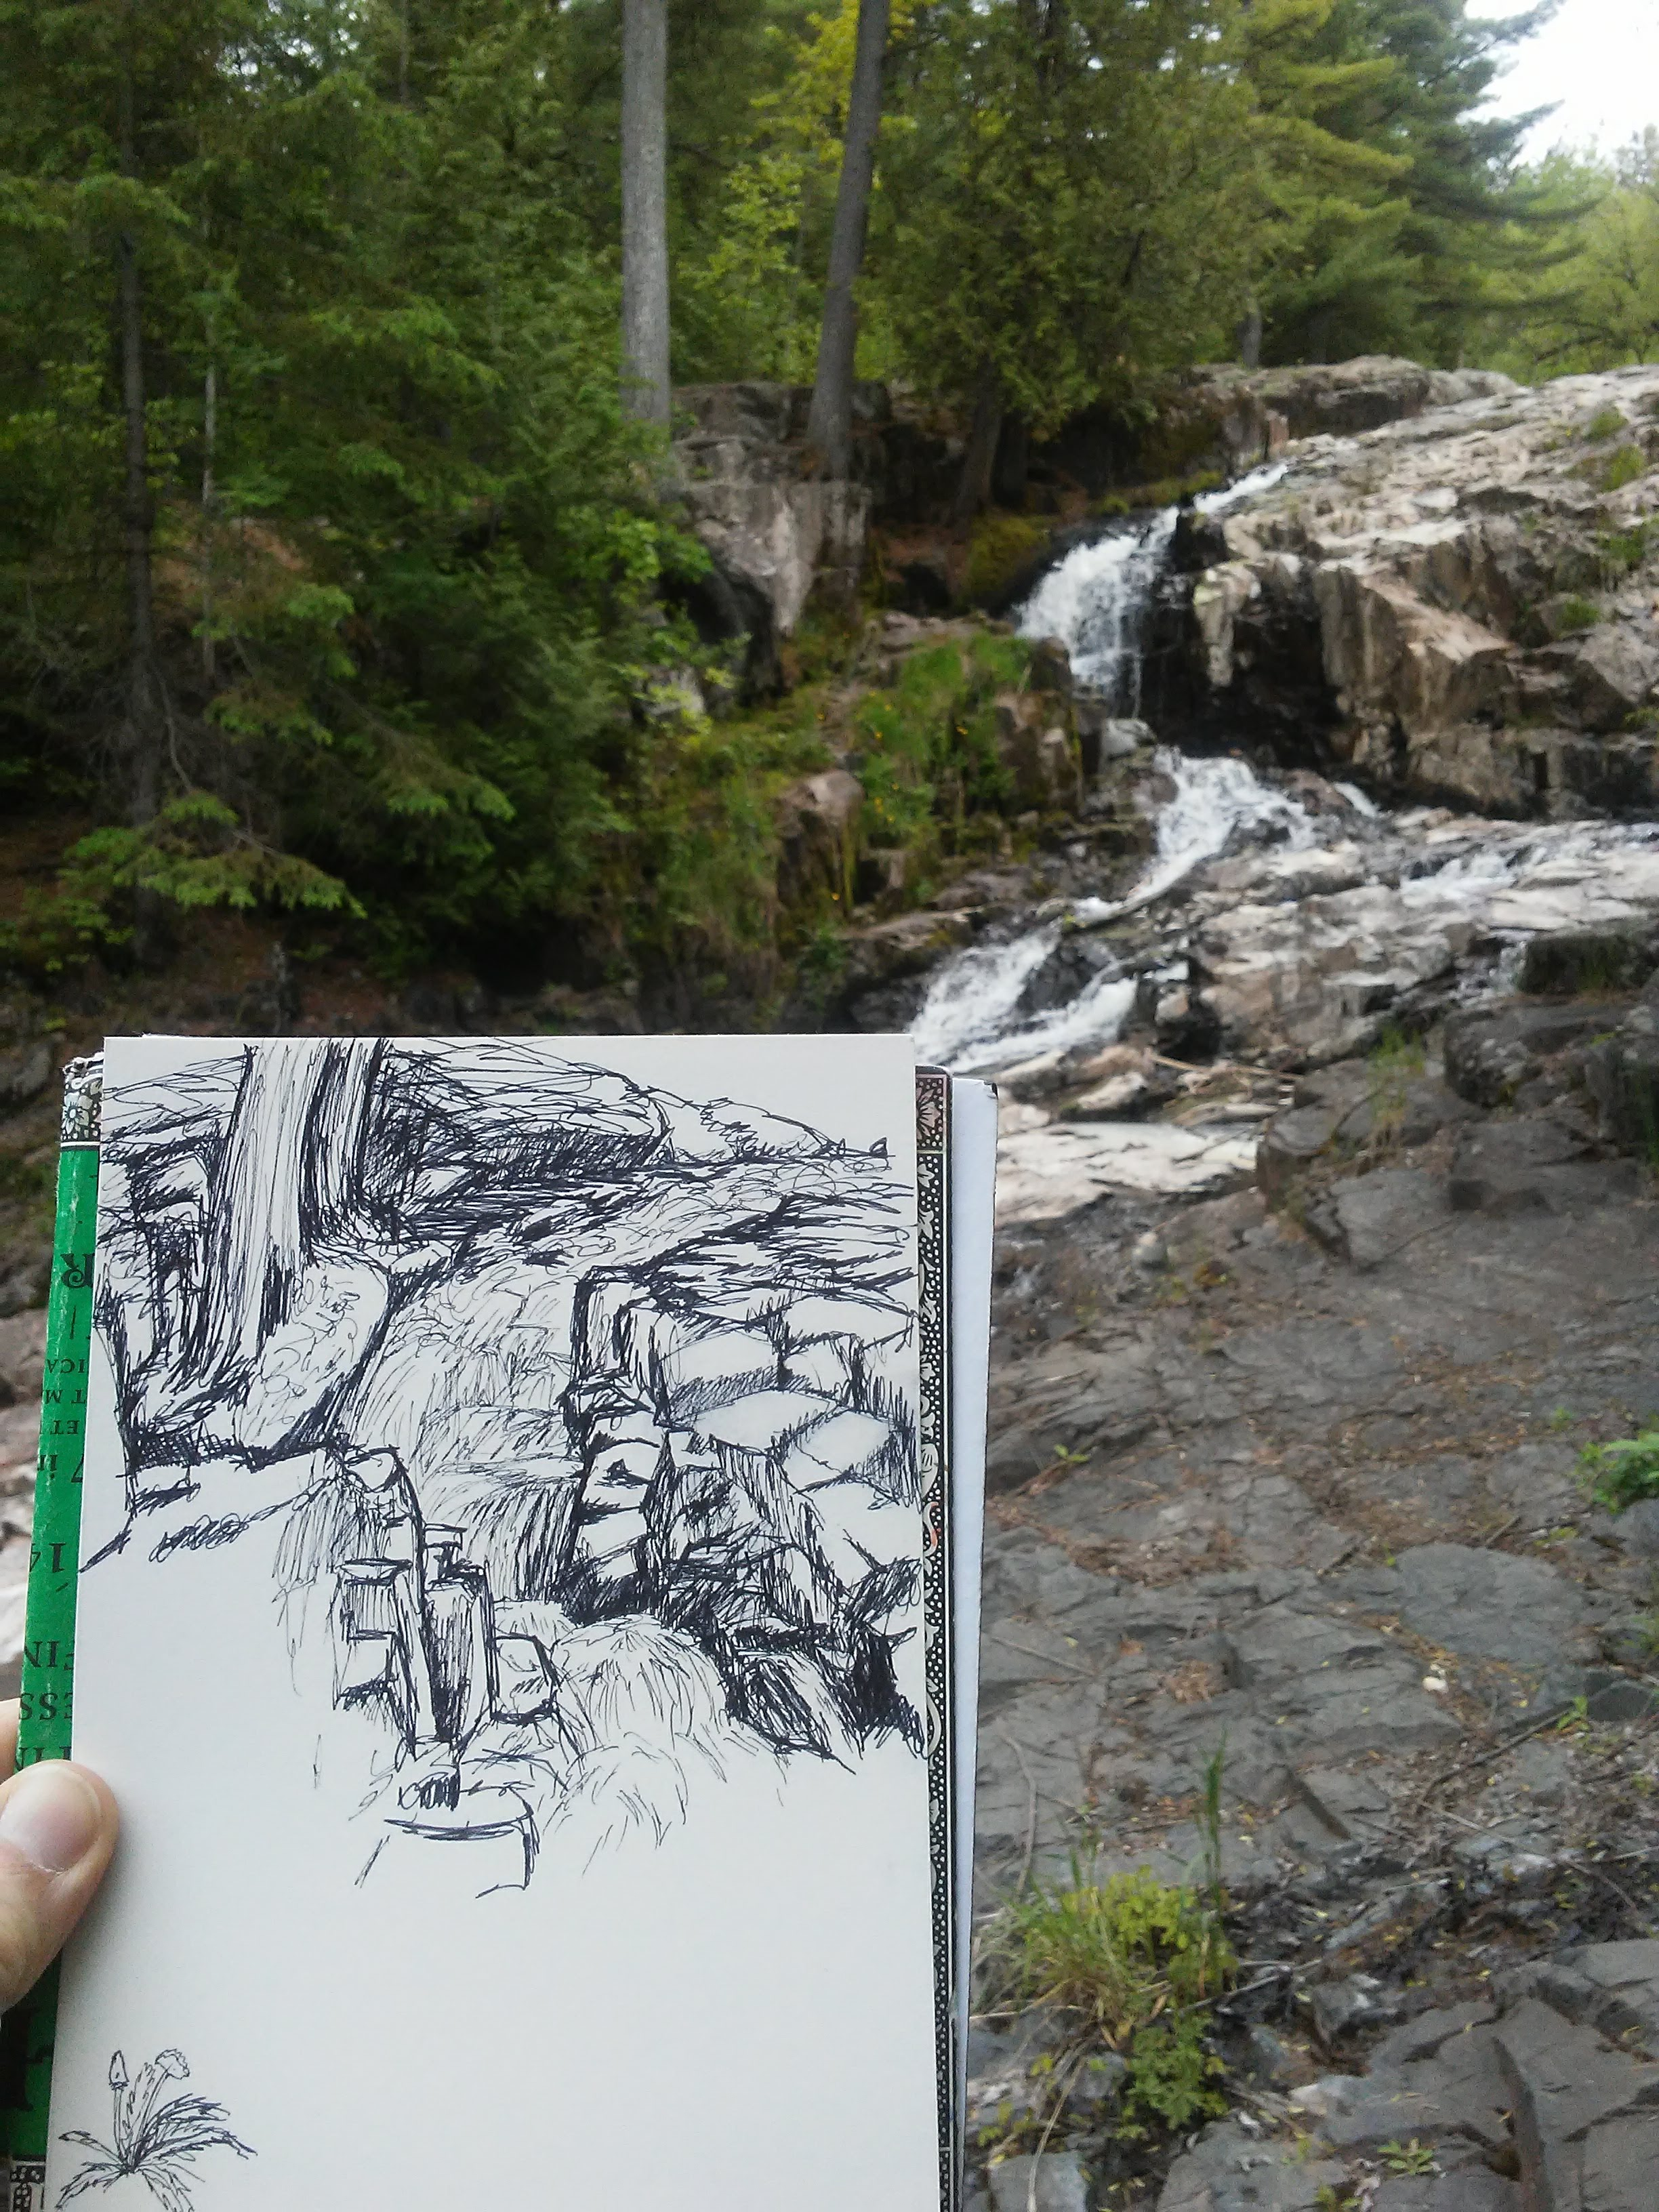 sketch of a waterfall in the foreground and the waterfall in the background